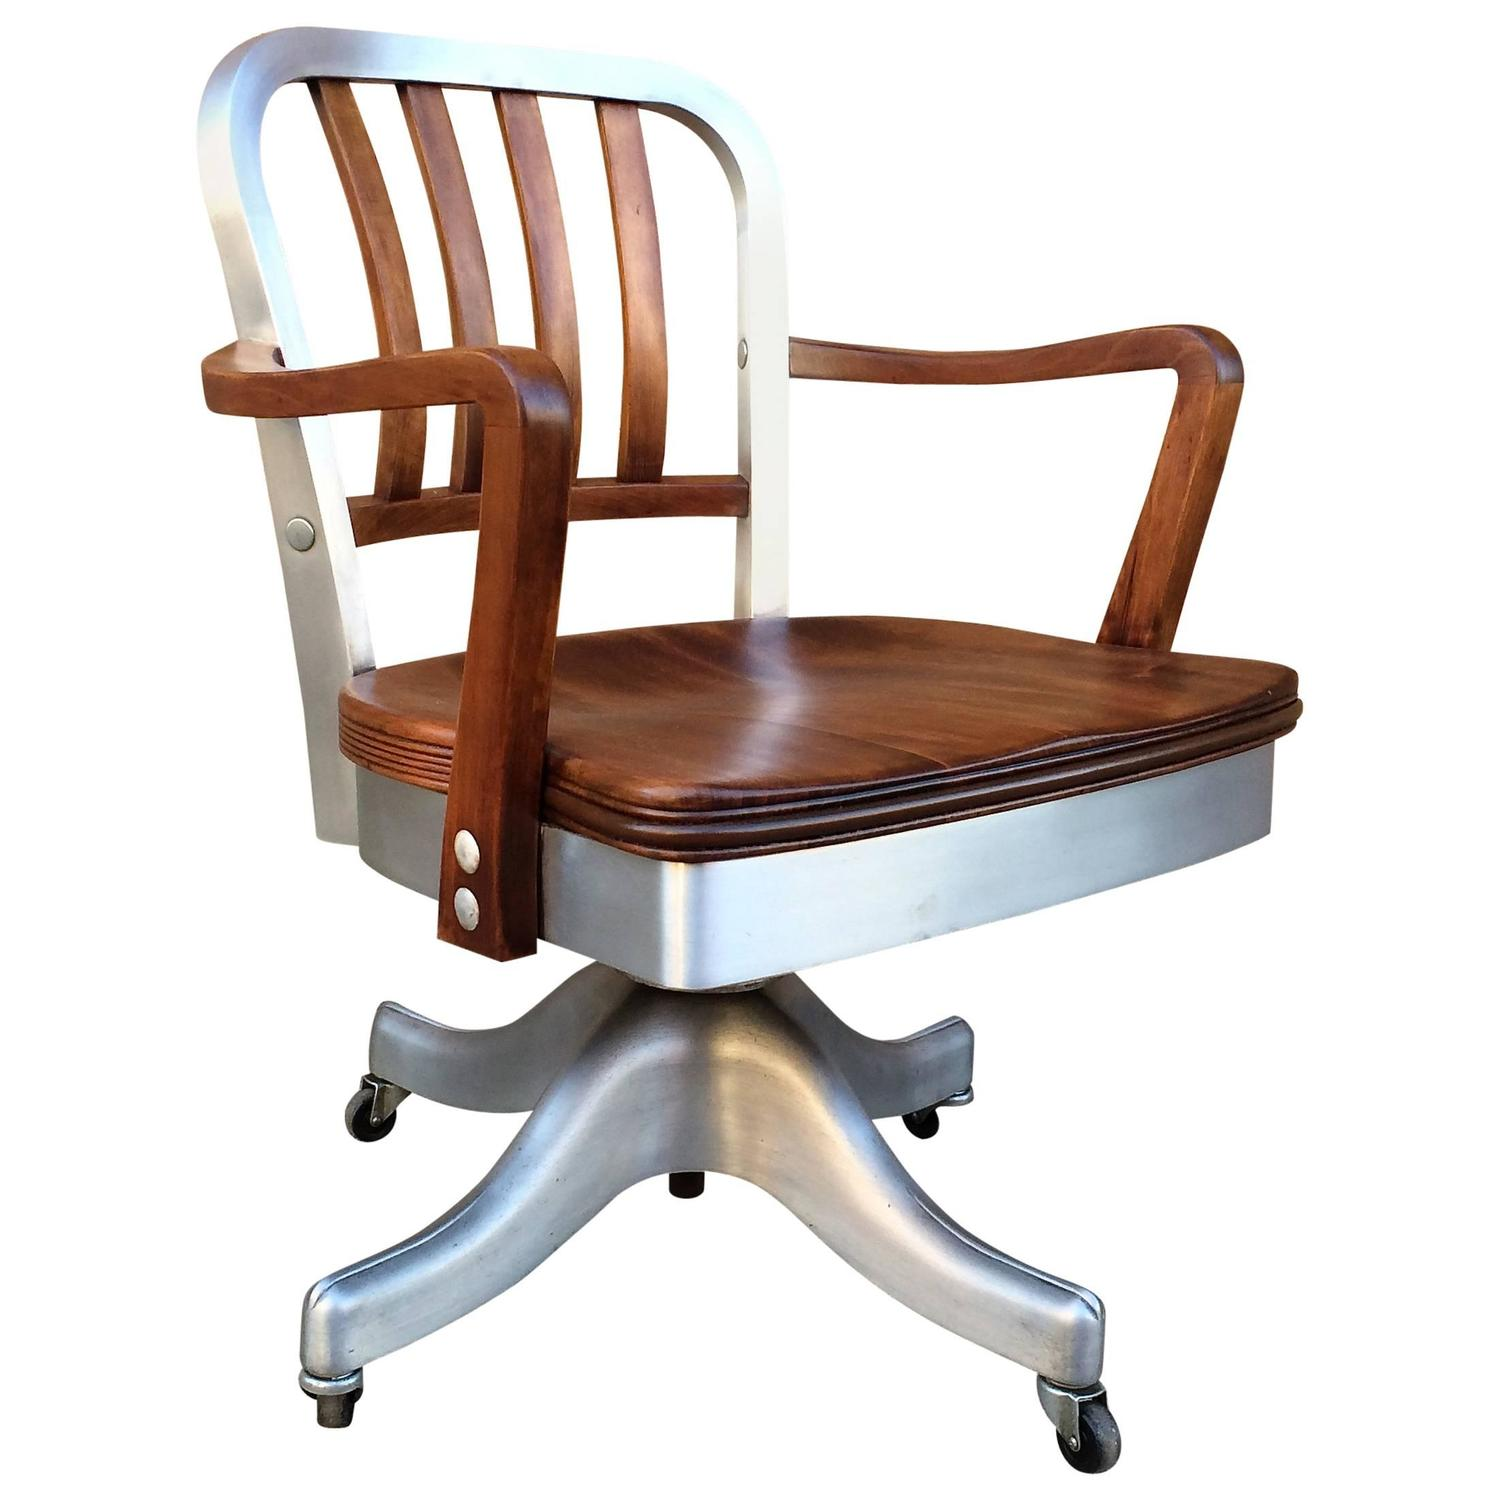 rolling chairs for office wood floors chair wheels shaw walker aluminum and walnut desk